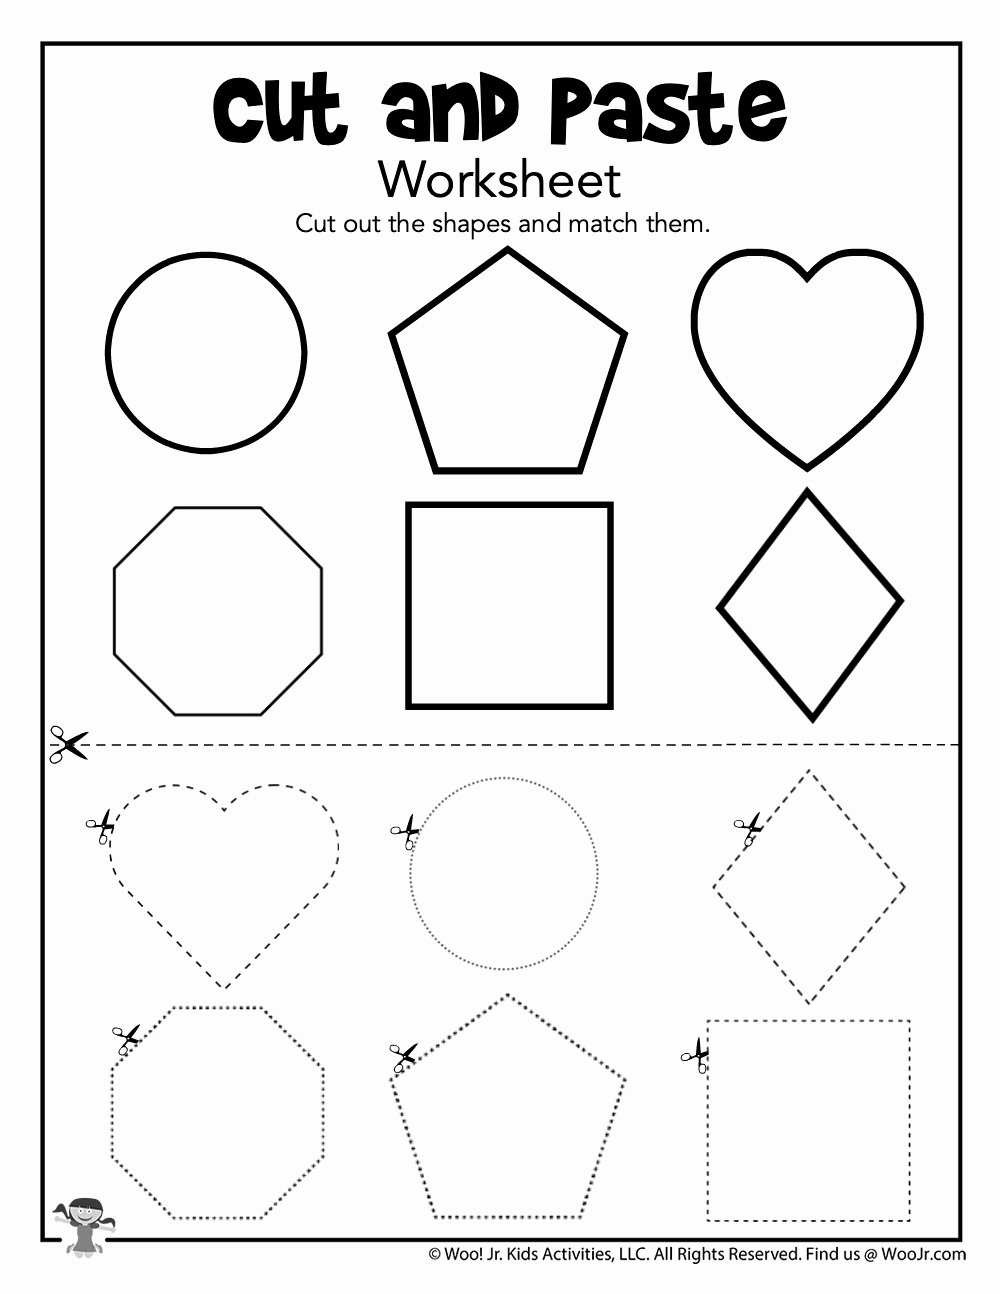 Matching Shapes Worksheets for Preschoolers Awesome Matching Shapes Worksheet for Preschooler